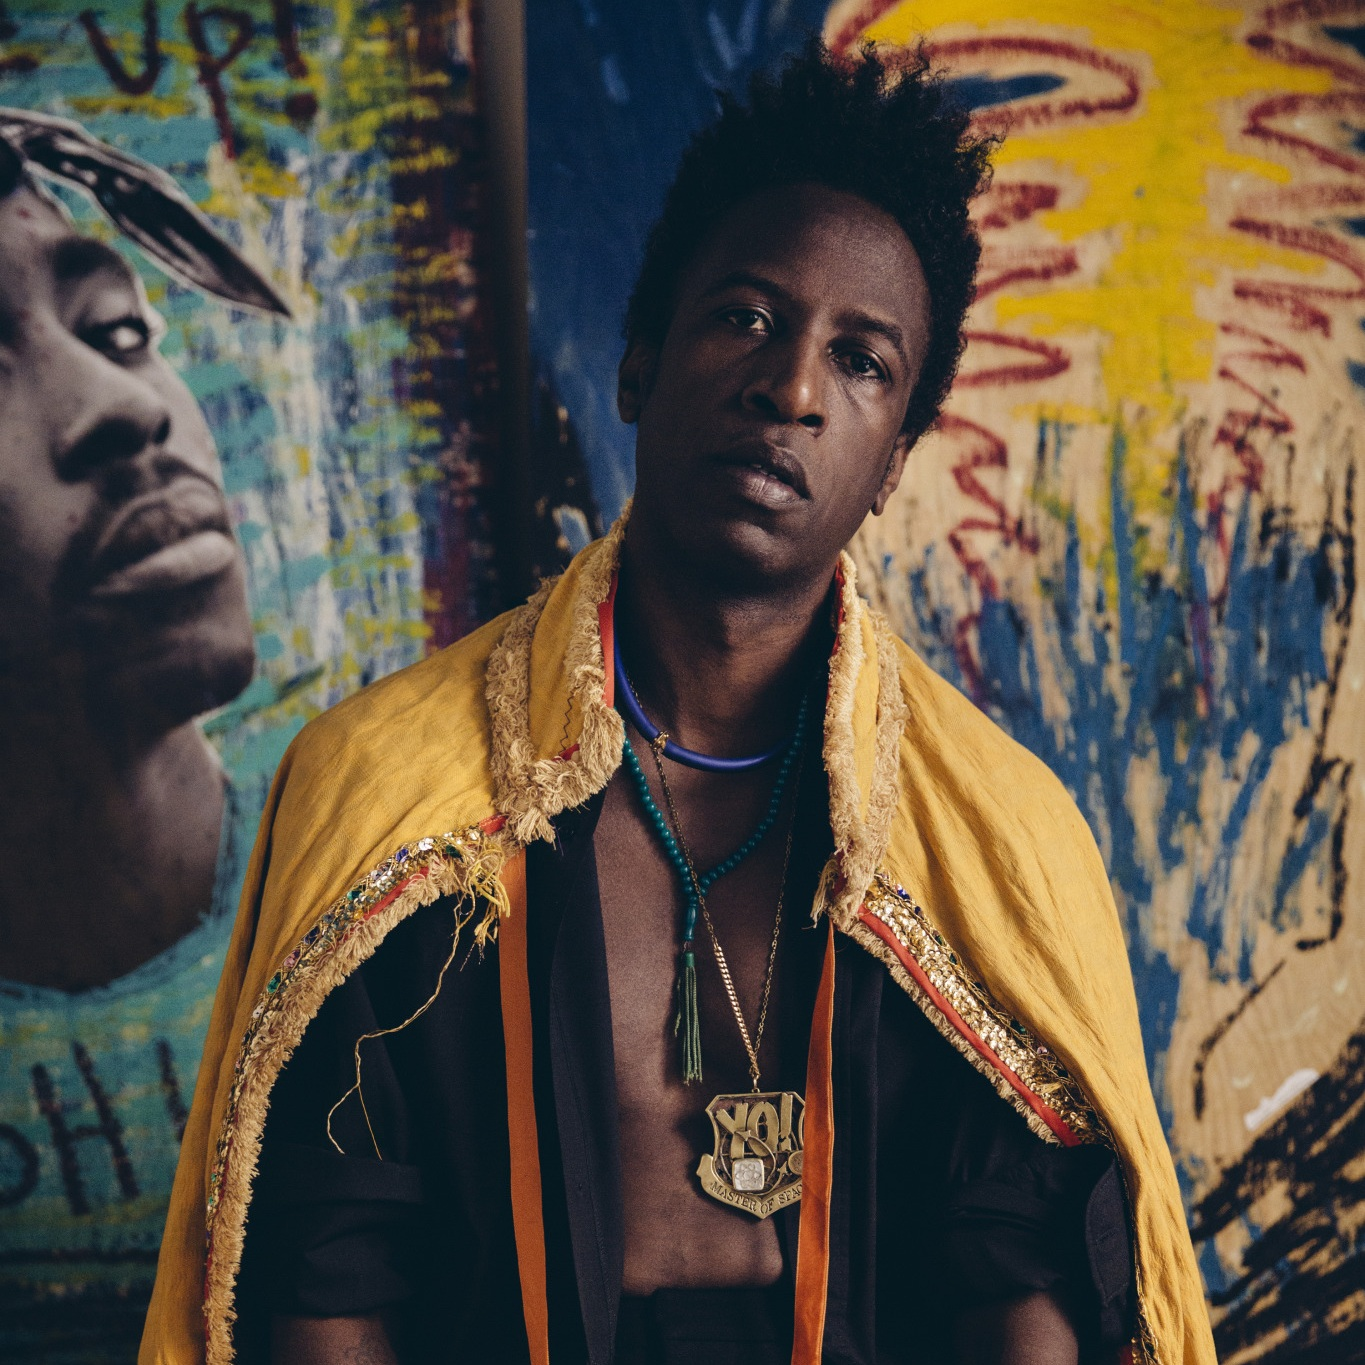 Saul+Williams+Photo+1.jpg